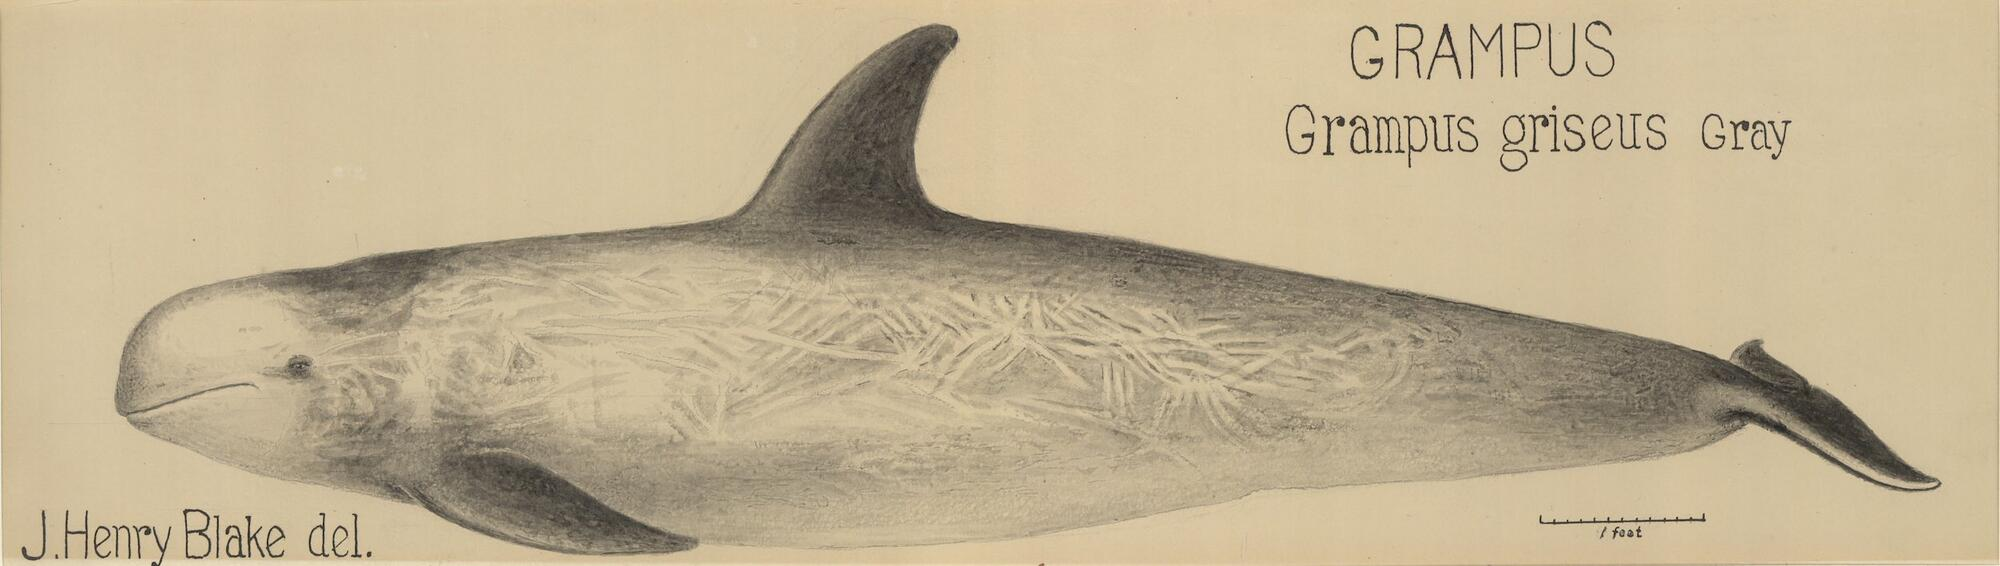 illustration of a Grampus griseus gray whale by J. Henry Blake